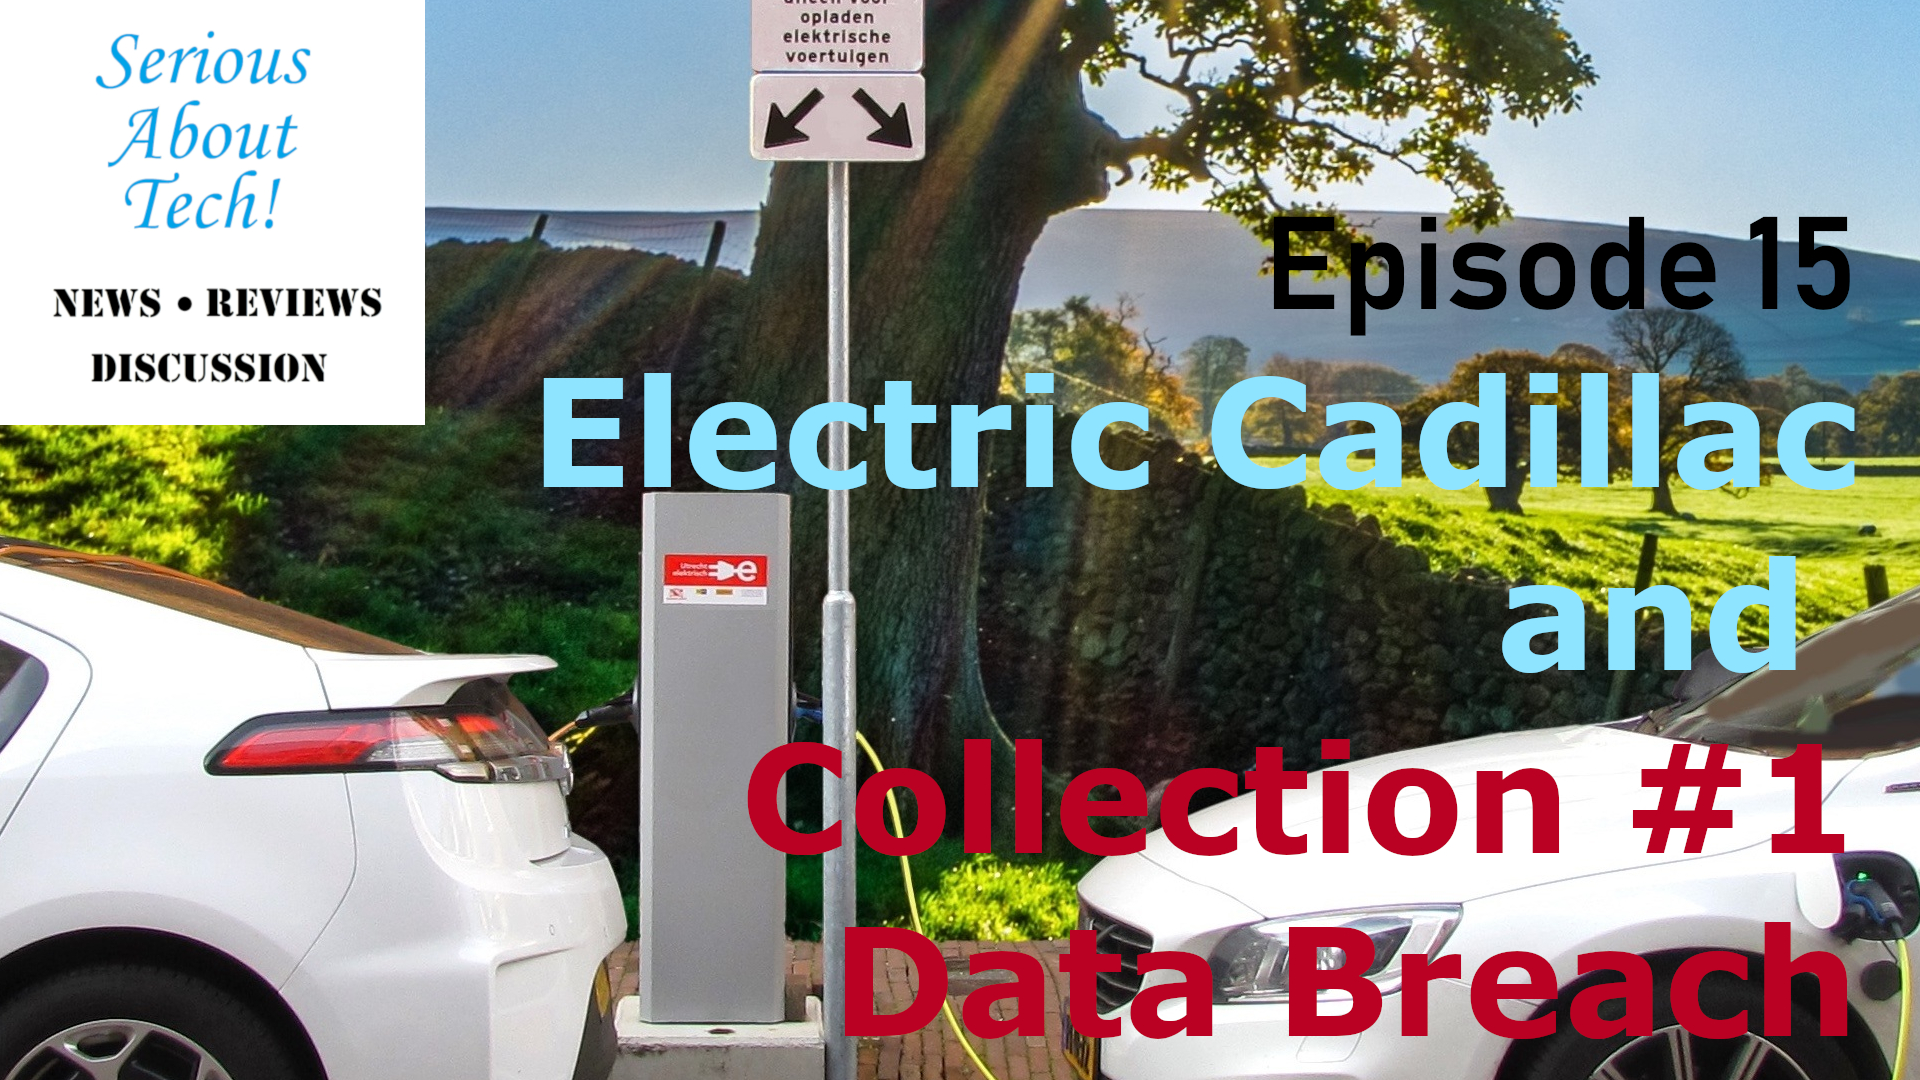 Electric Cadillac and Collection #1 Data Breach